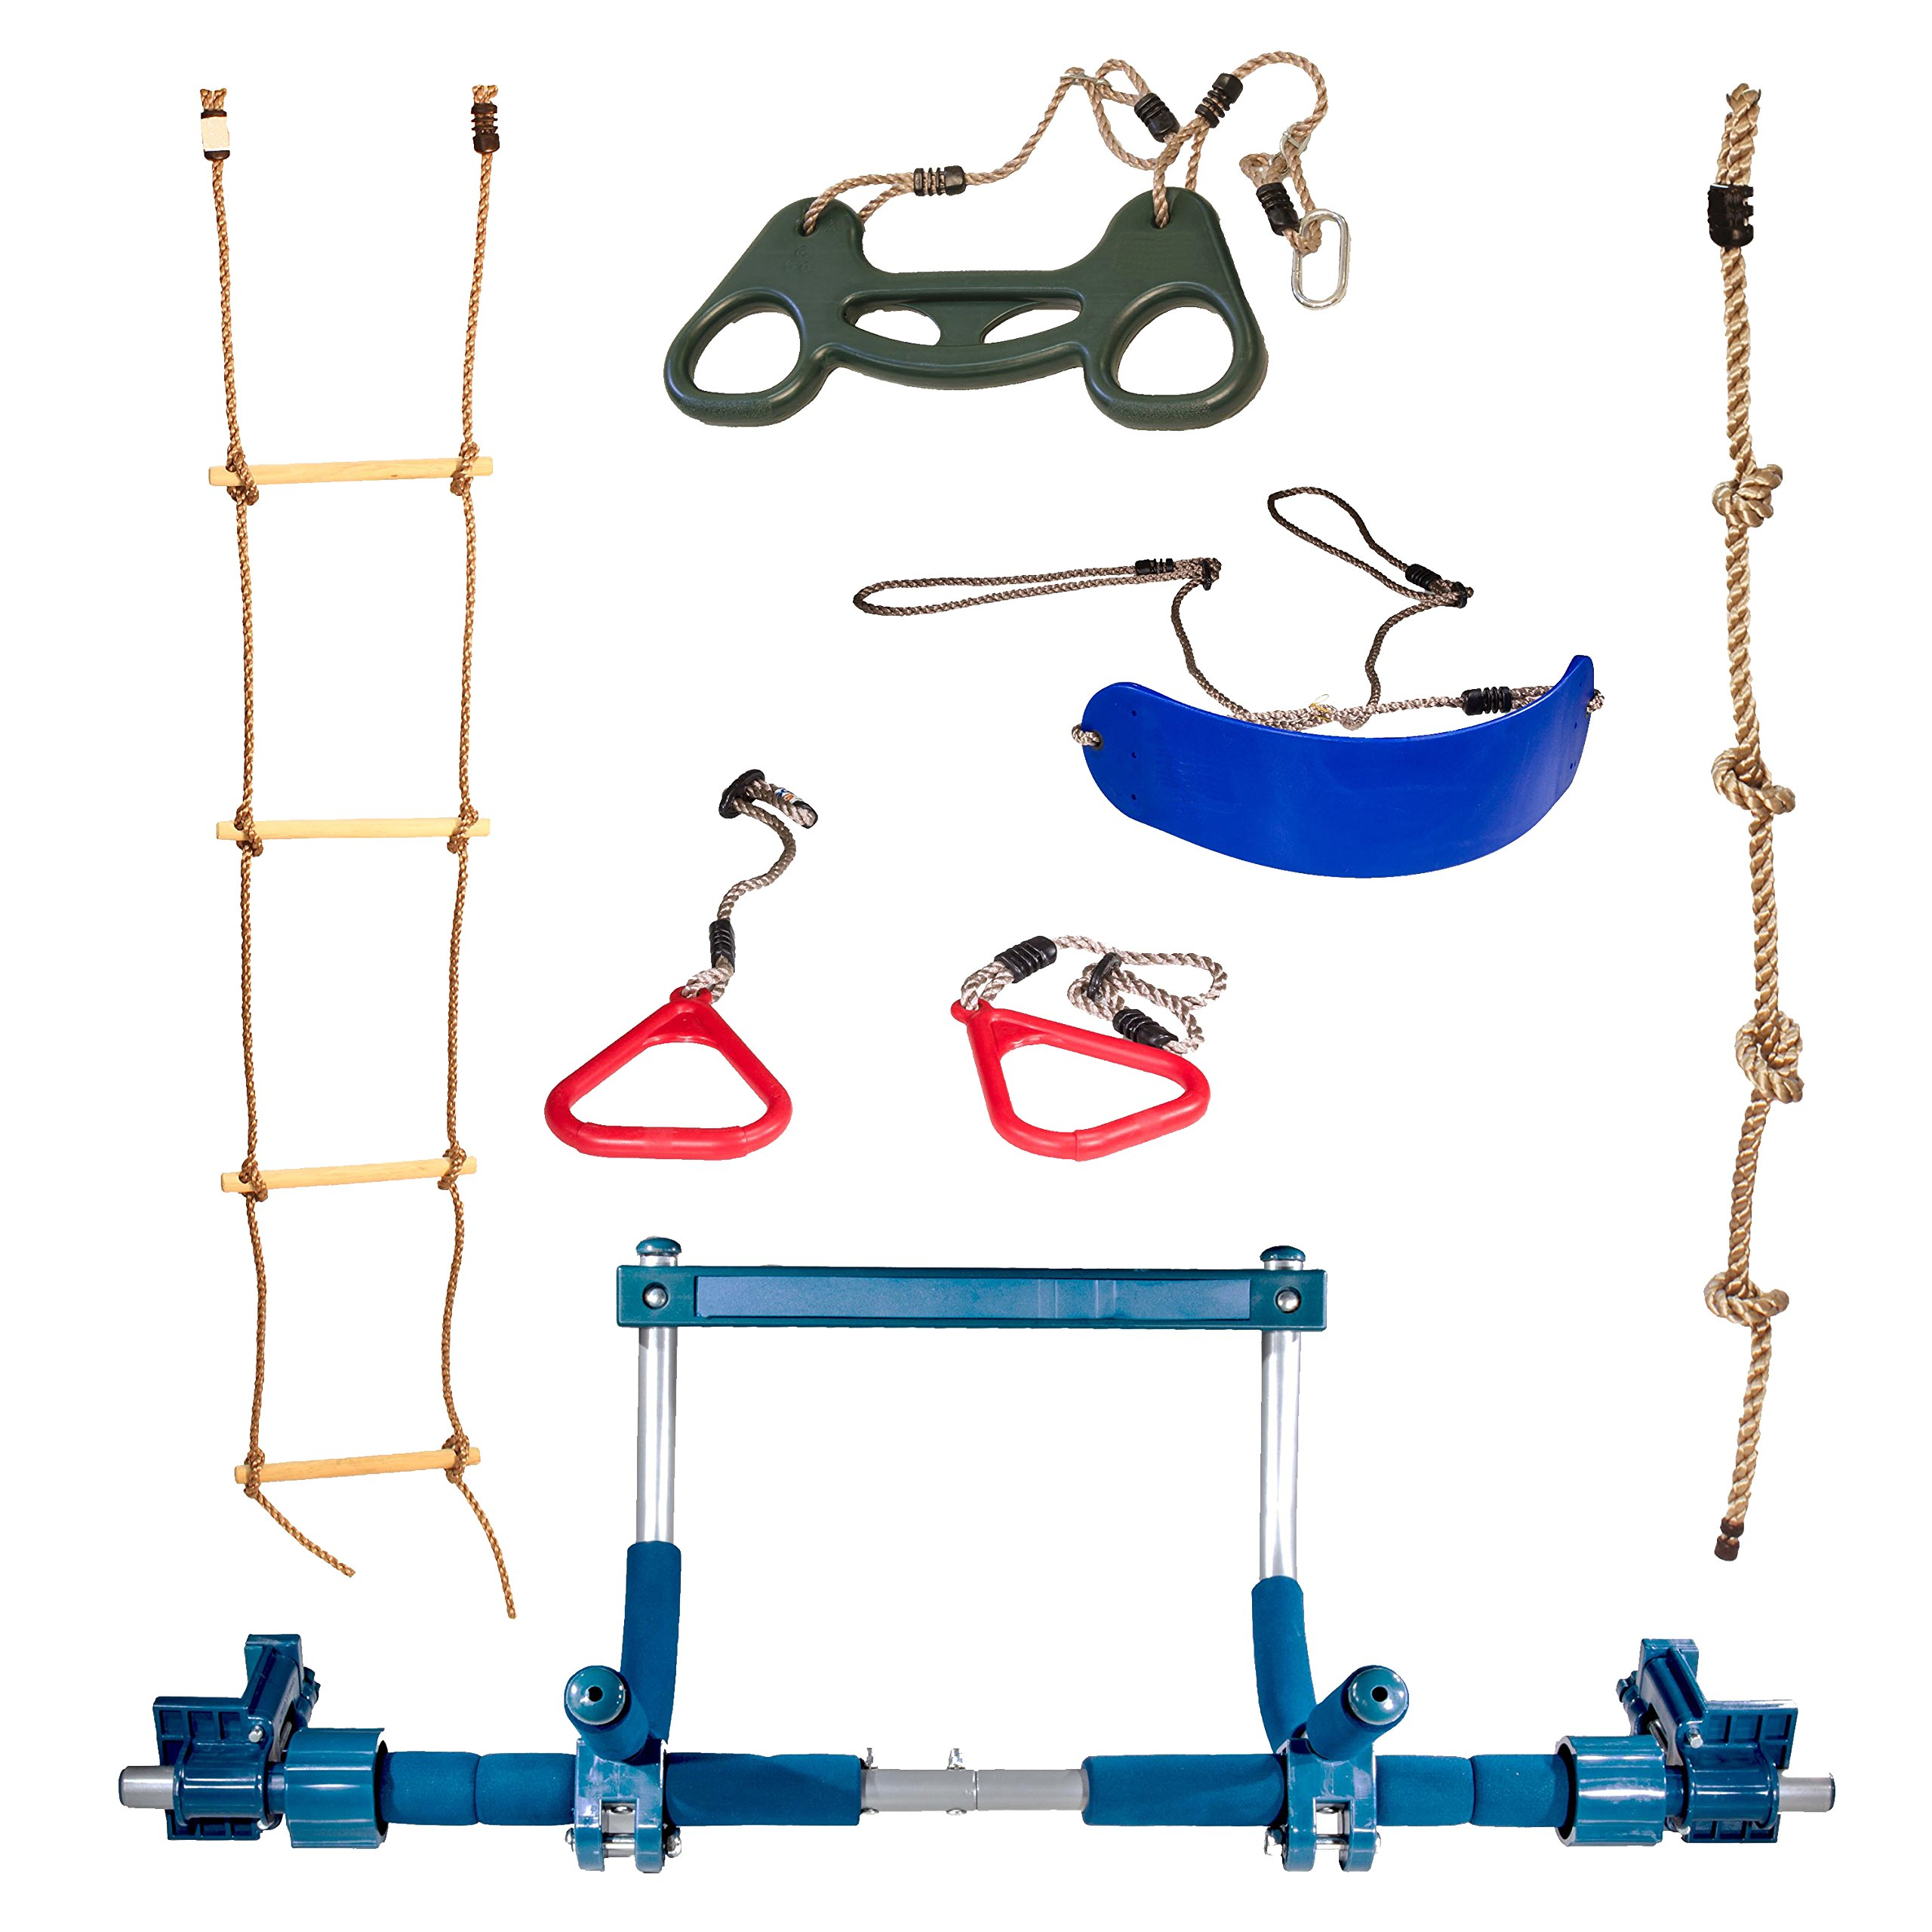 Gym1 Deluxe Indoor Playground with Indoor Swing, Plastic Rings, Trapeze Bar, Climbing Ladder, and Swinging Rope … by Gym1